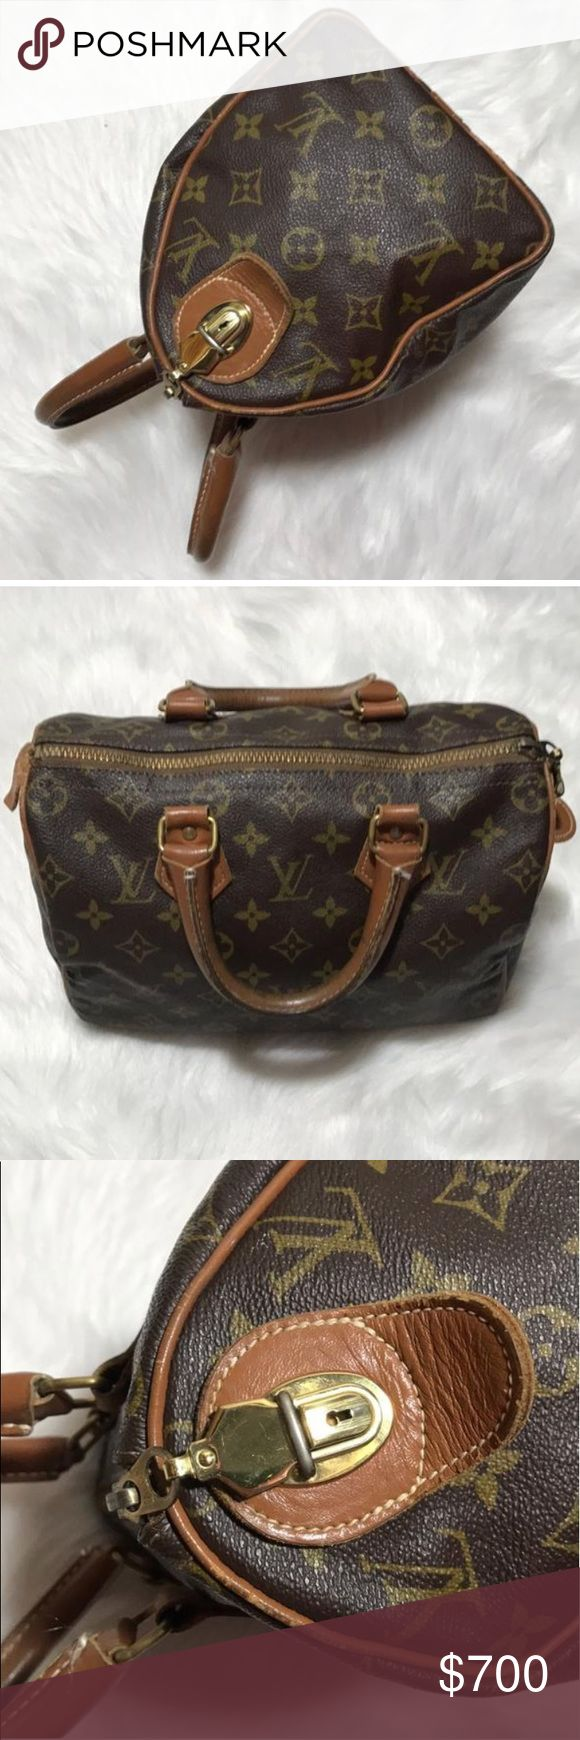 RARE LV French Company Speedy Highly collectible and valuable as they are very hard to find in this condition. Speedy 25 from Louis Vuitton during the French Company days! Own a piece of history. The zipper clicks into the lock at the end of the bag. Any Louis Vuitton addict needs a piece like this in their collection! Louis Vuitton Bags Satchels